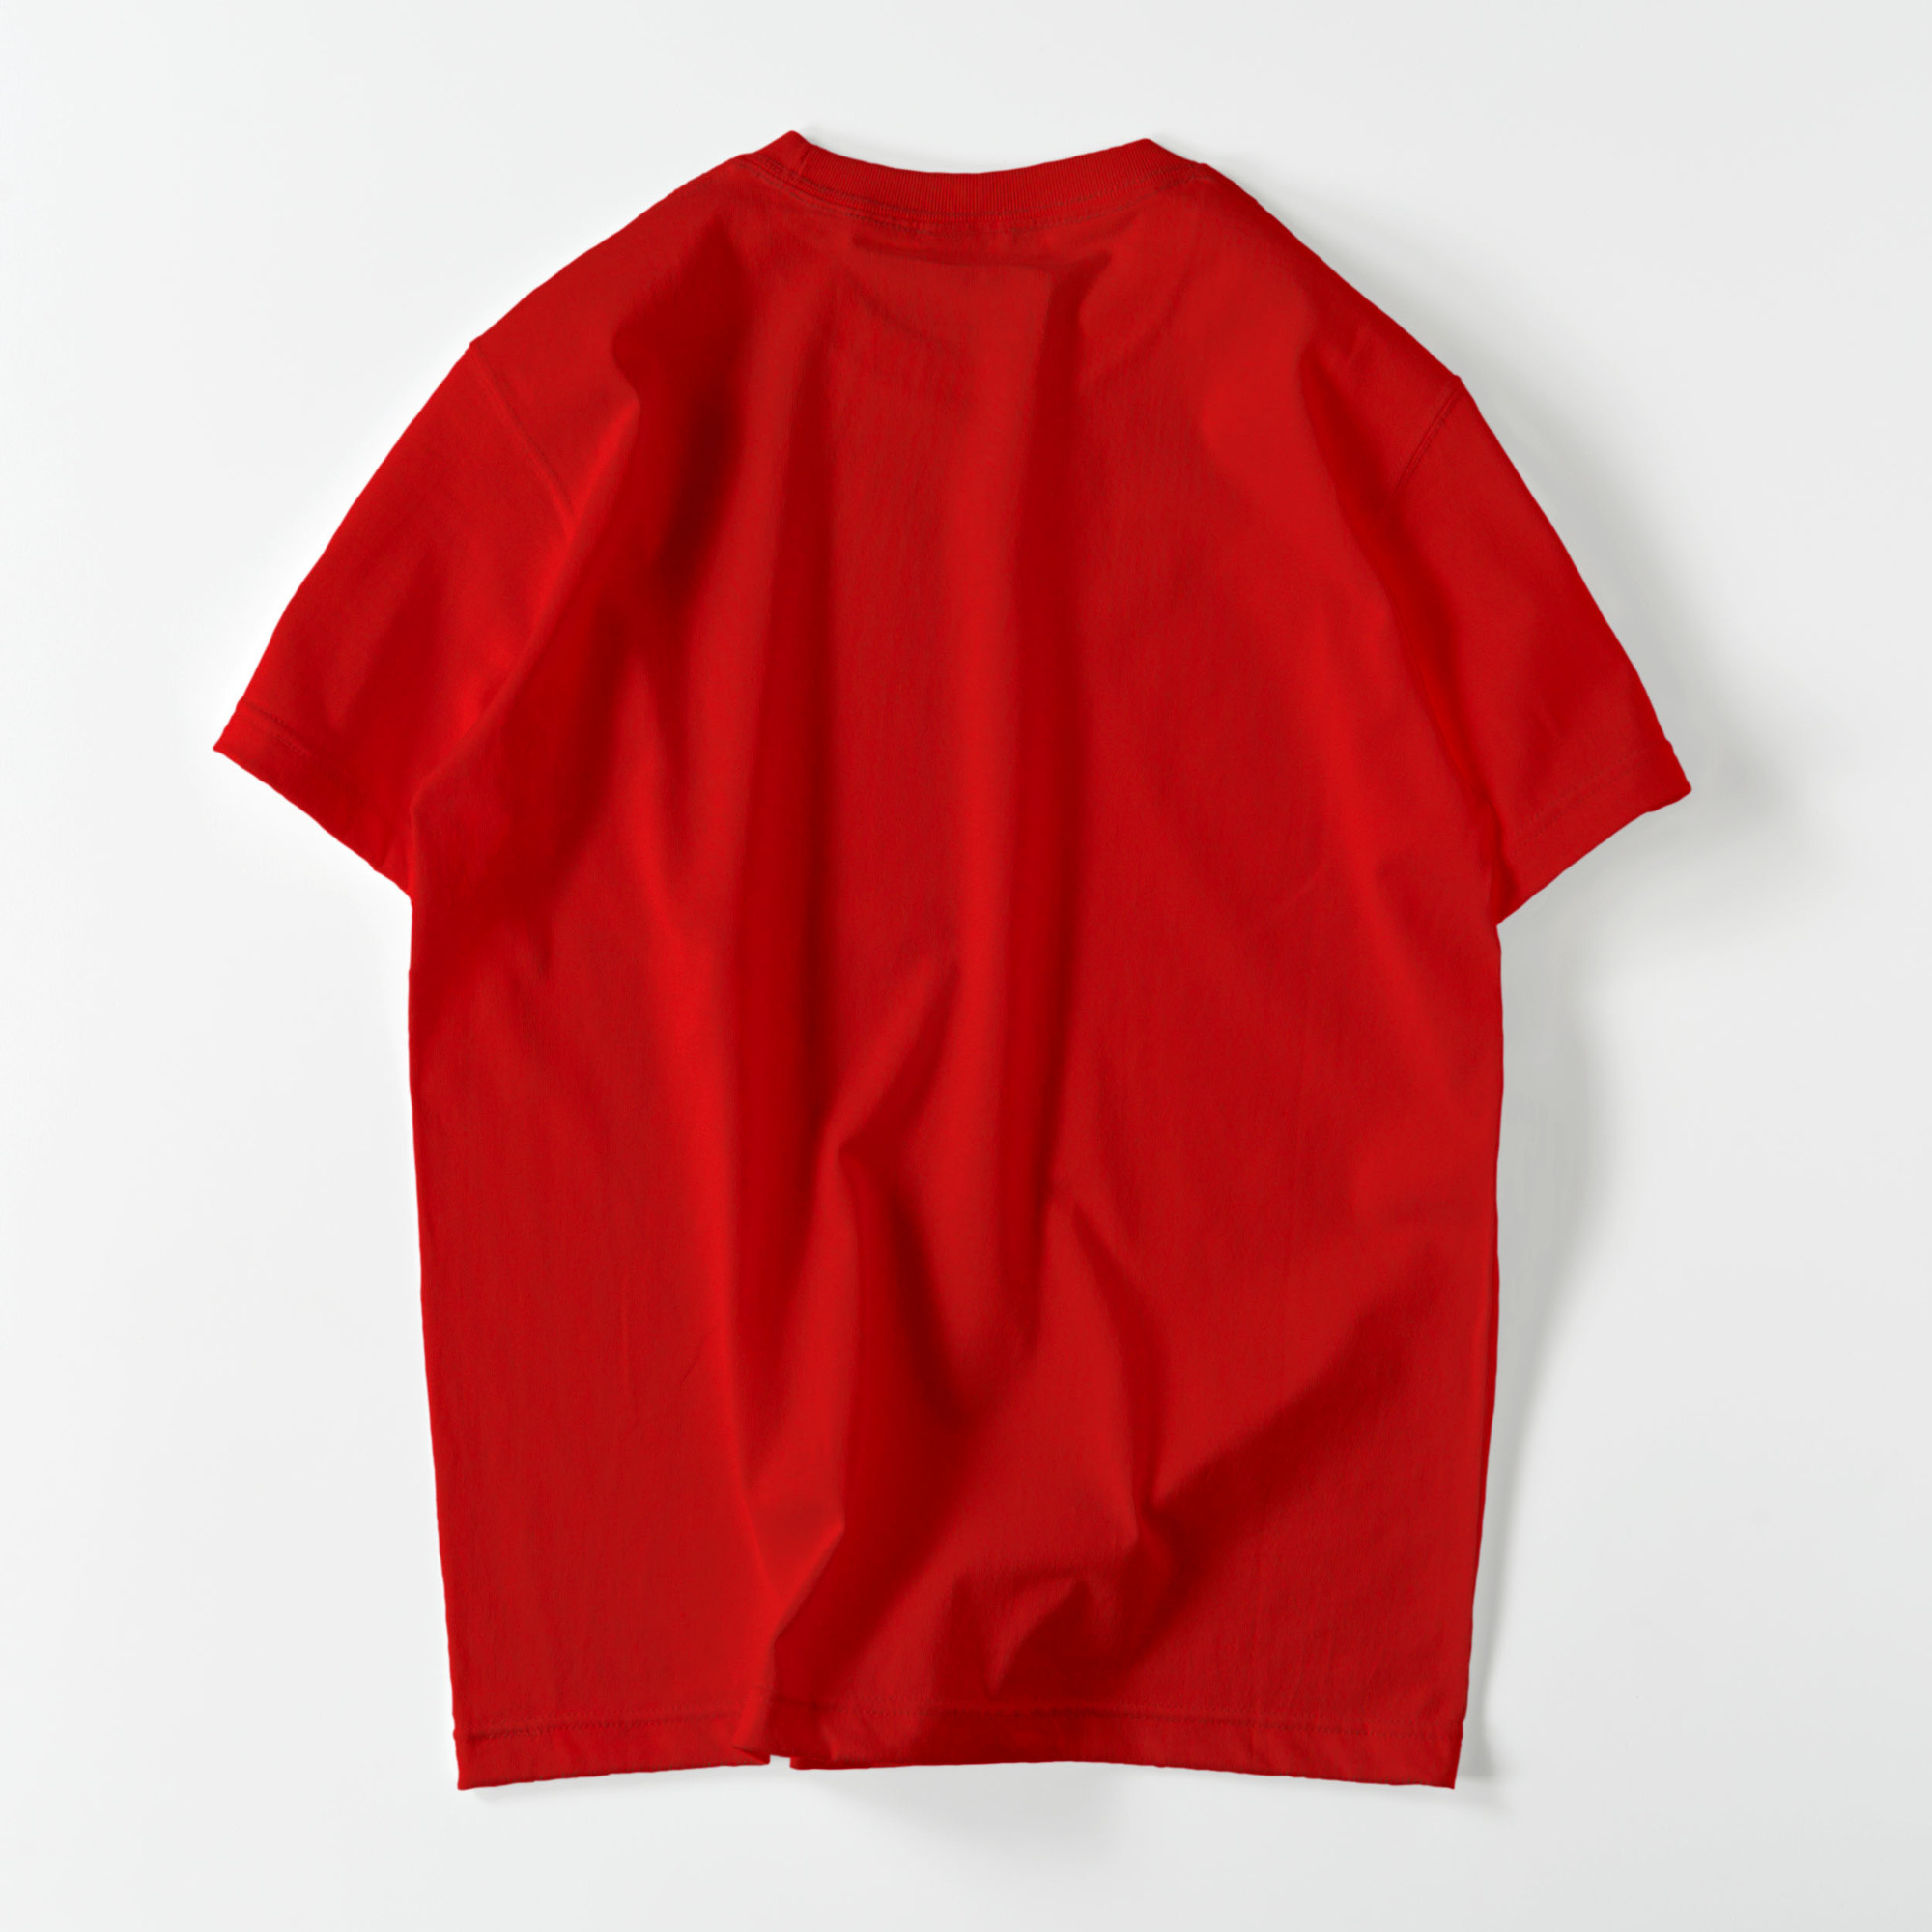 pmt002-17358-00014red-f